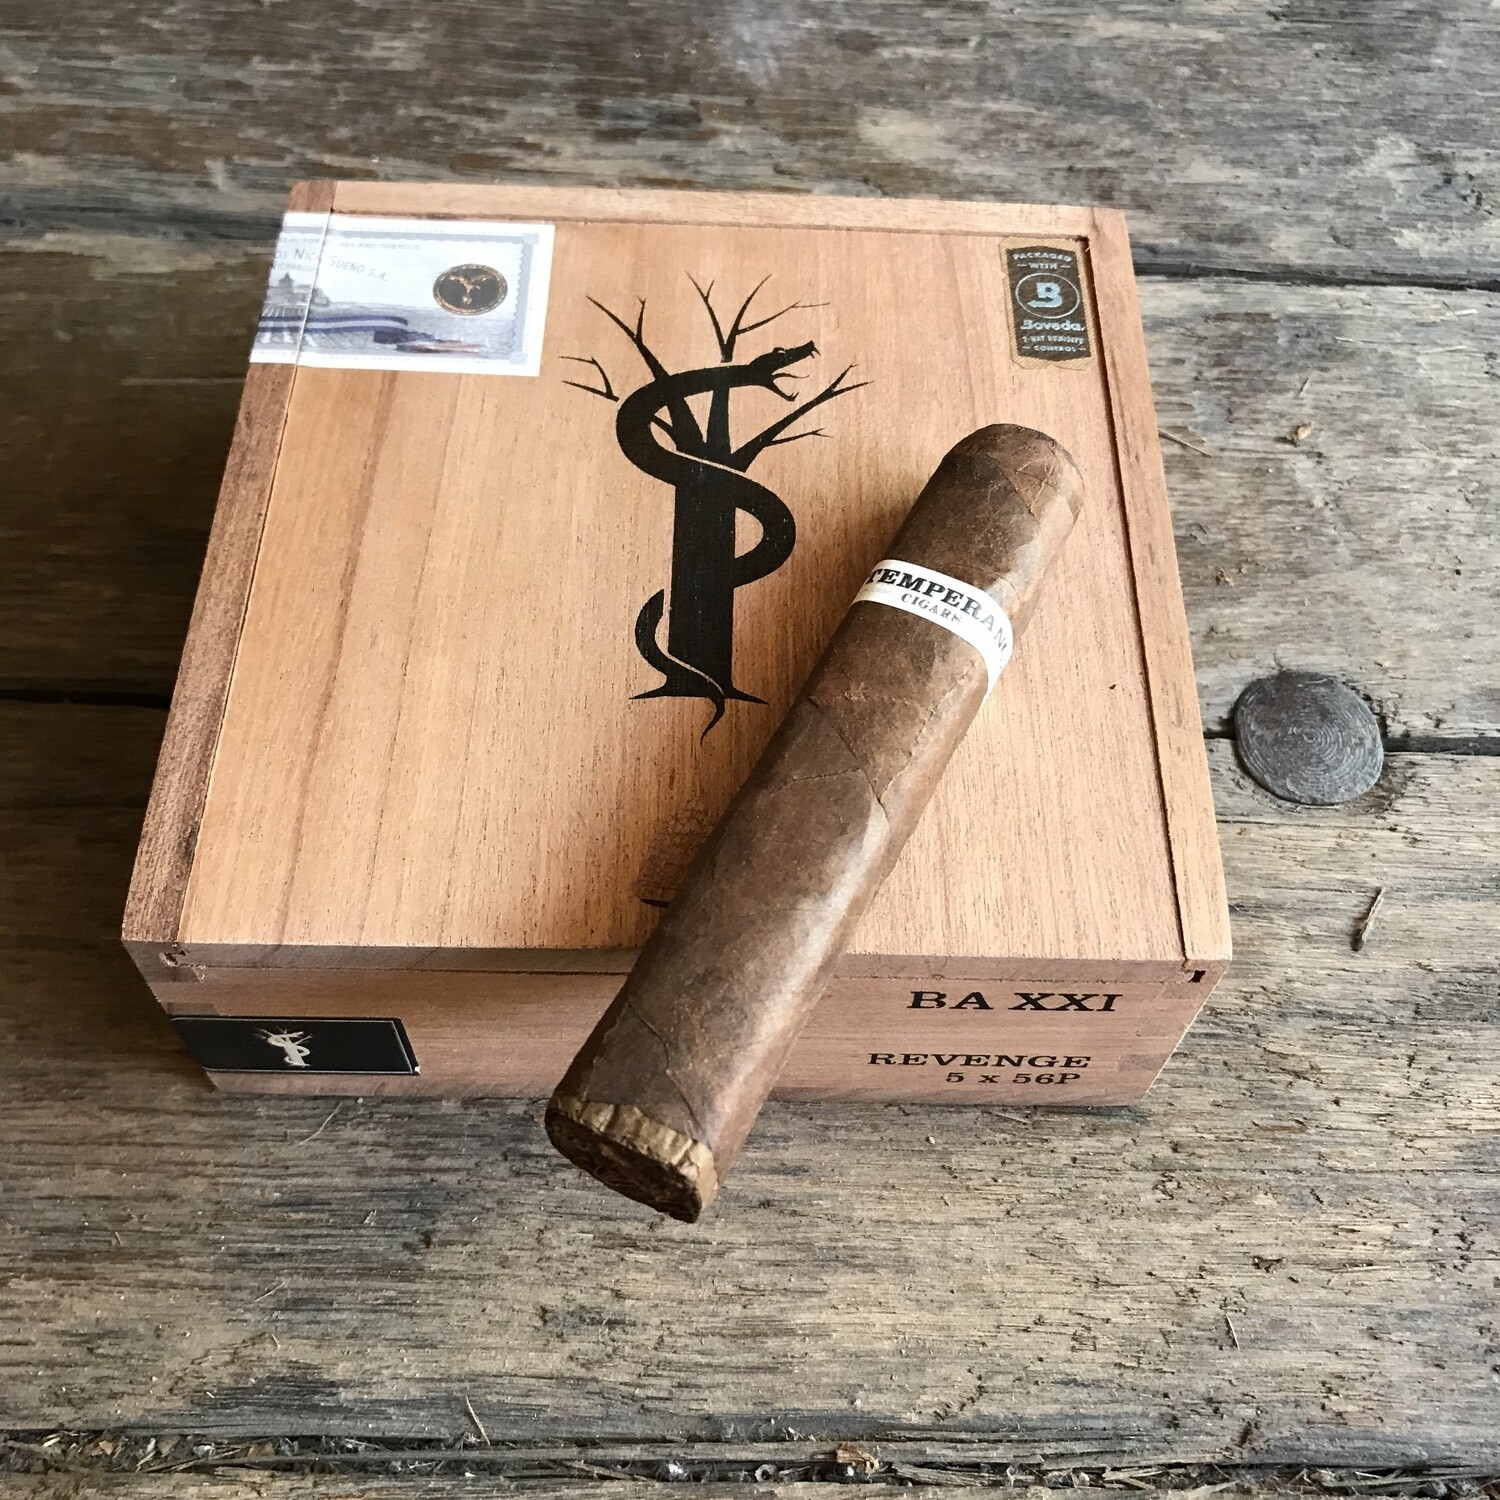 LE Revenge 5x56 Box Pressed Gran Robusto, Intemperance BA XXI, 12's